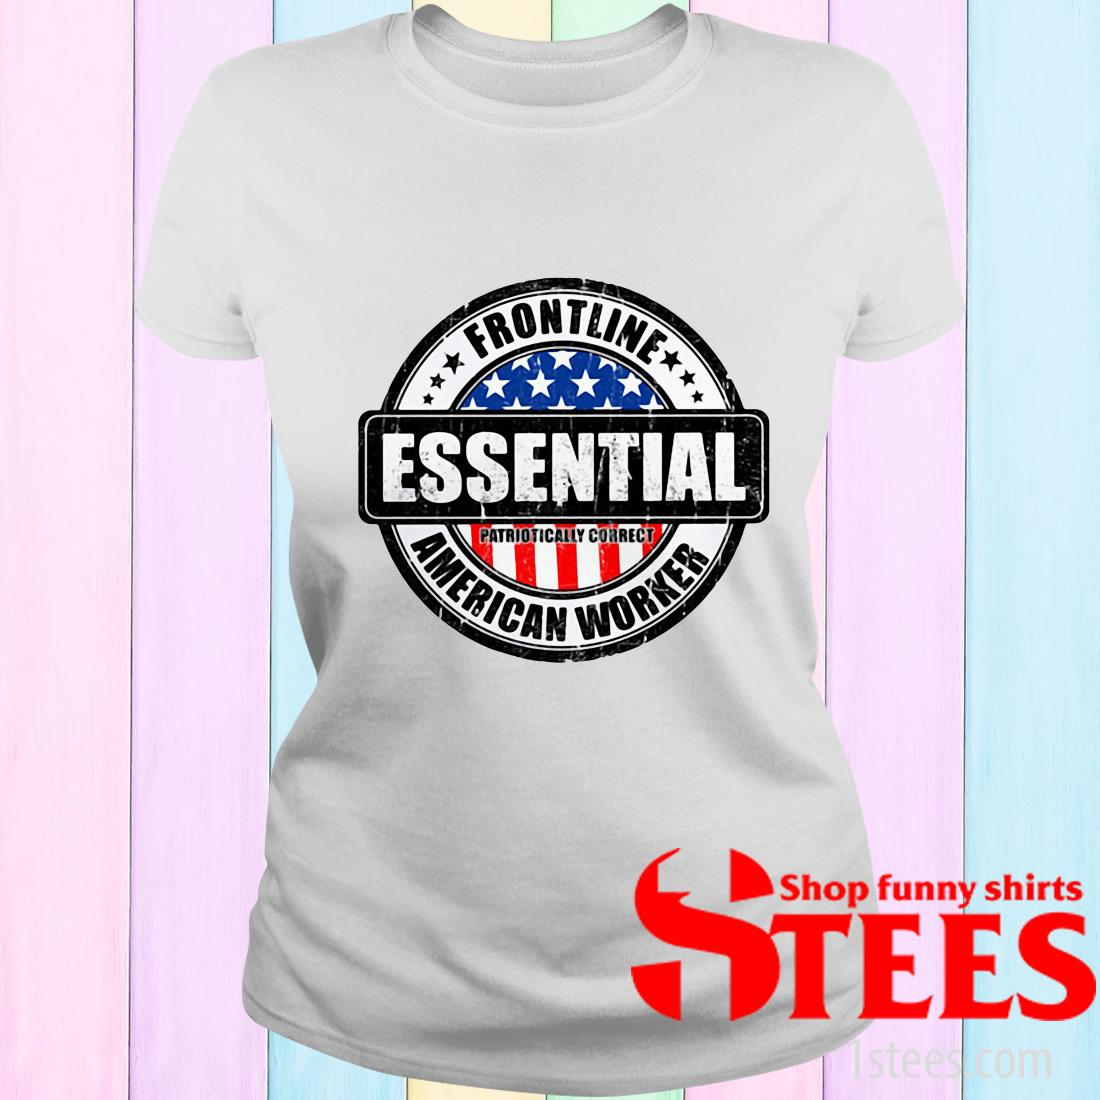 Frontline Essential Patriotically Correct American Worker Shirt